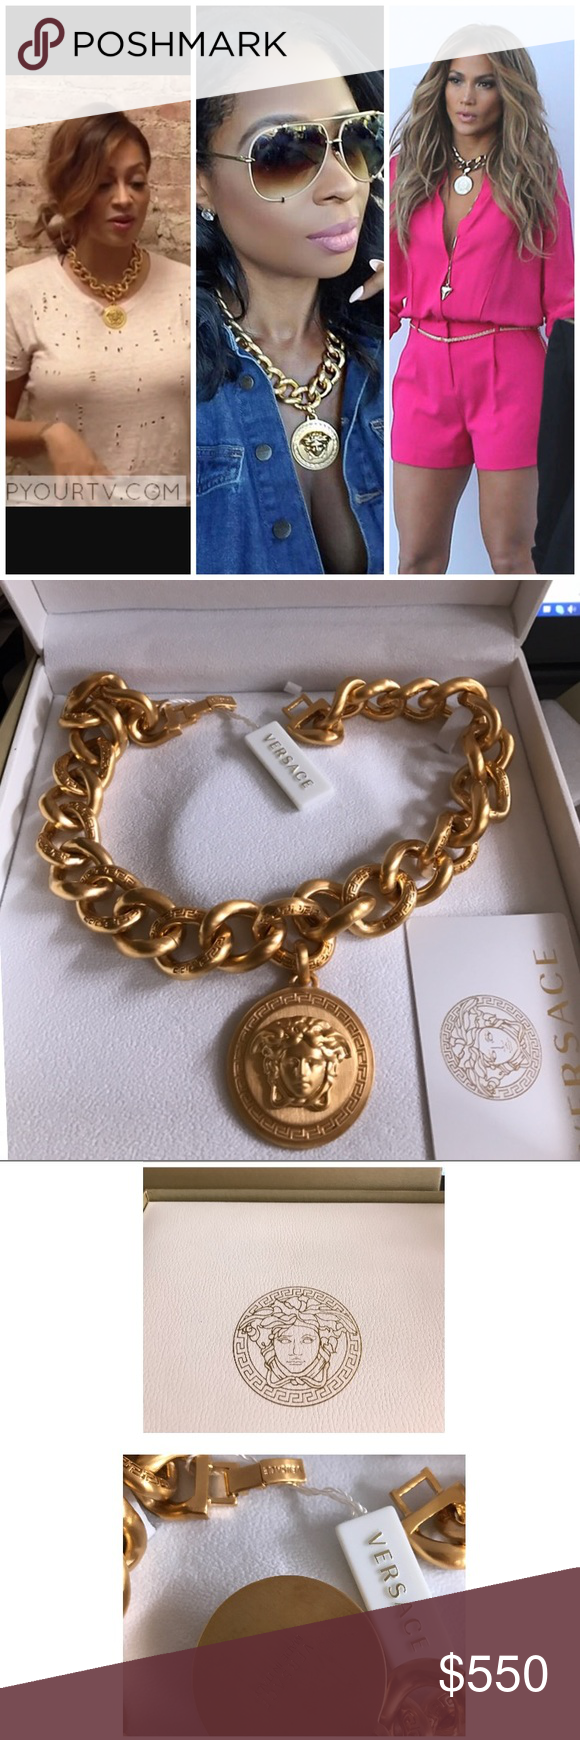 Versace medallion medusa gold chain necklace nwt versace jewelry